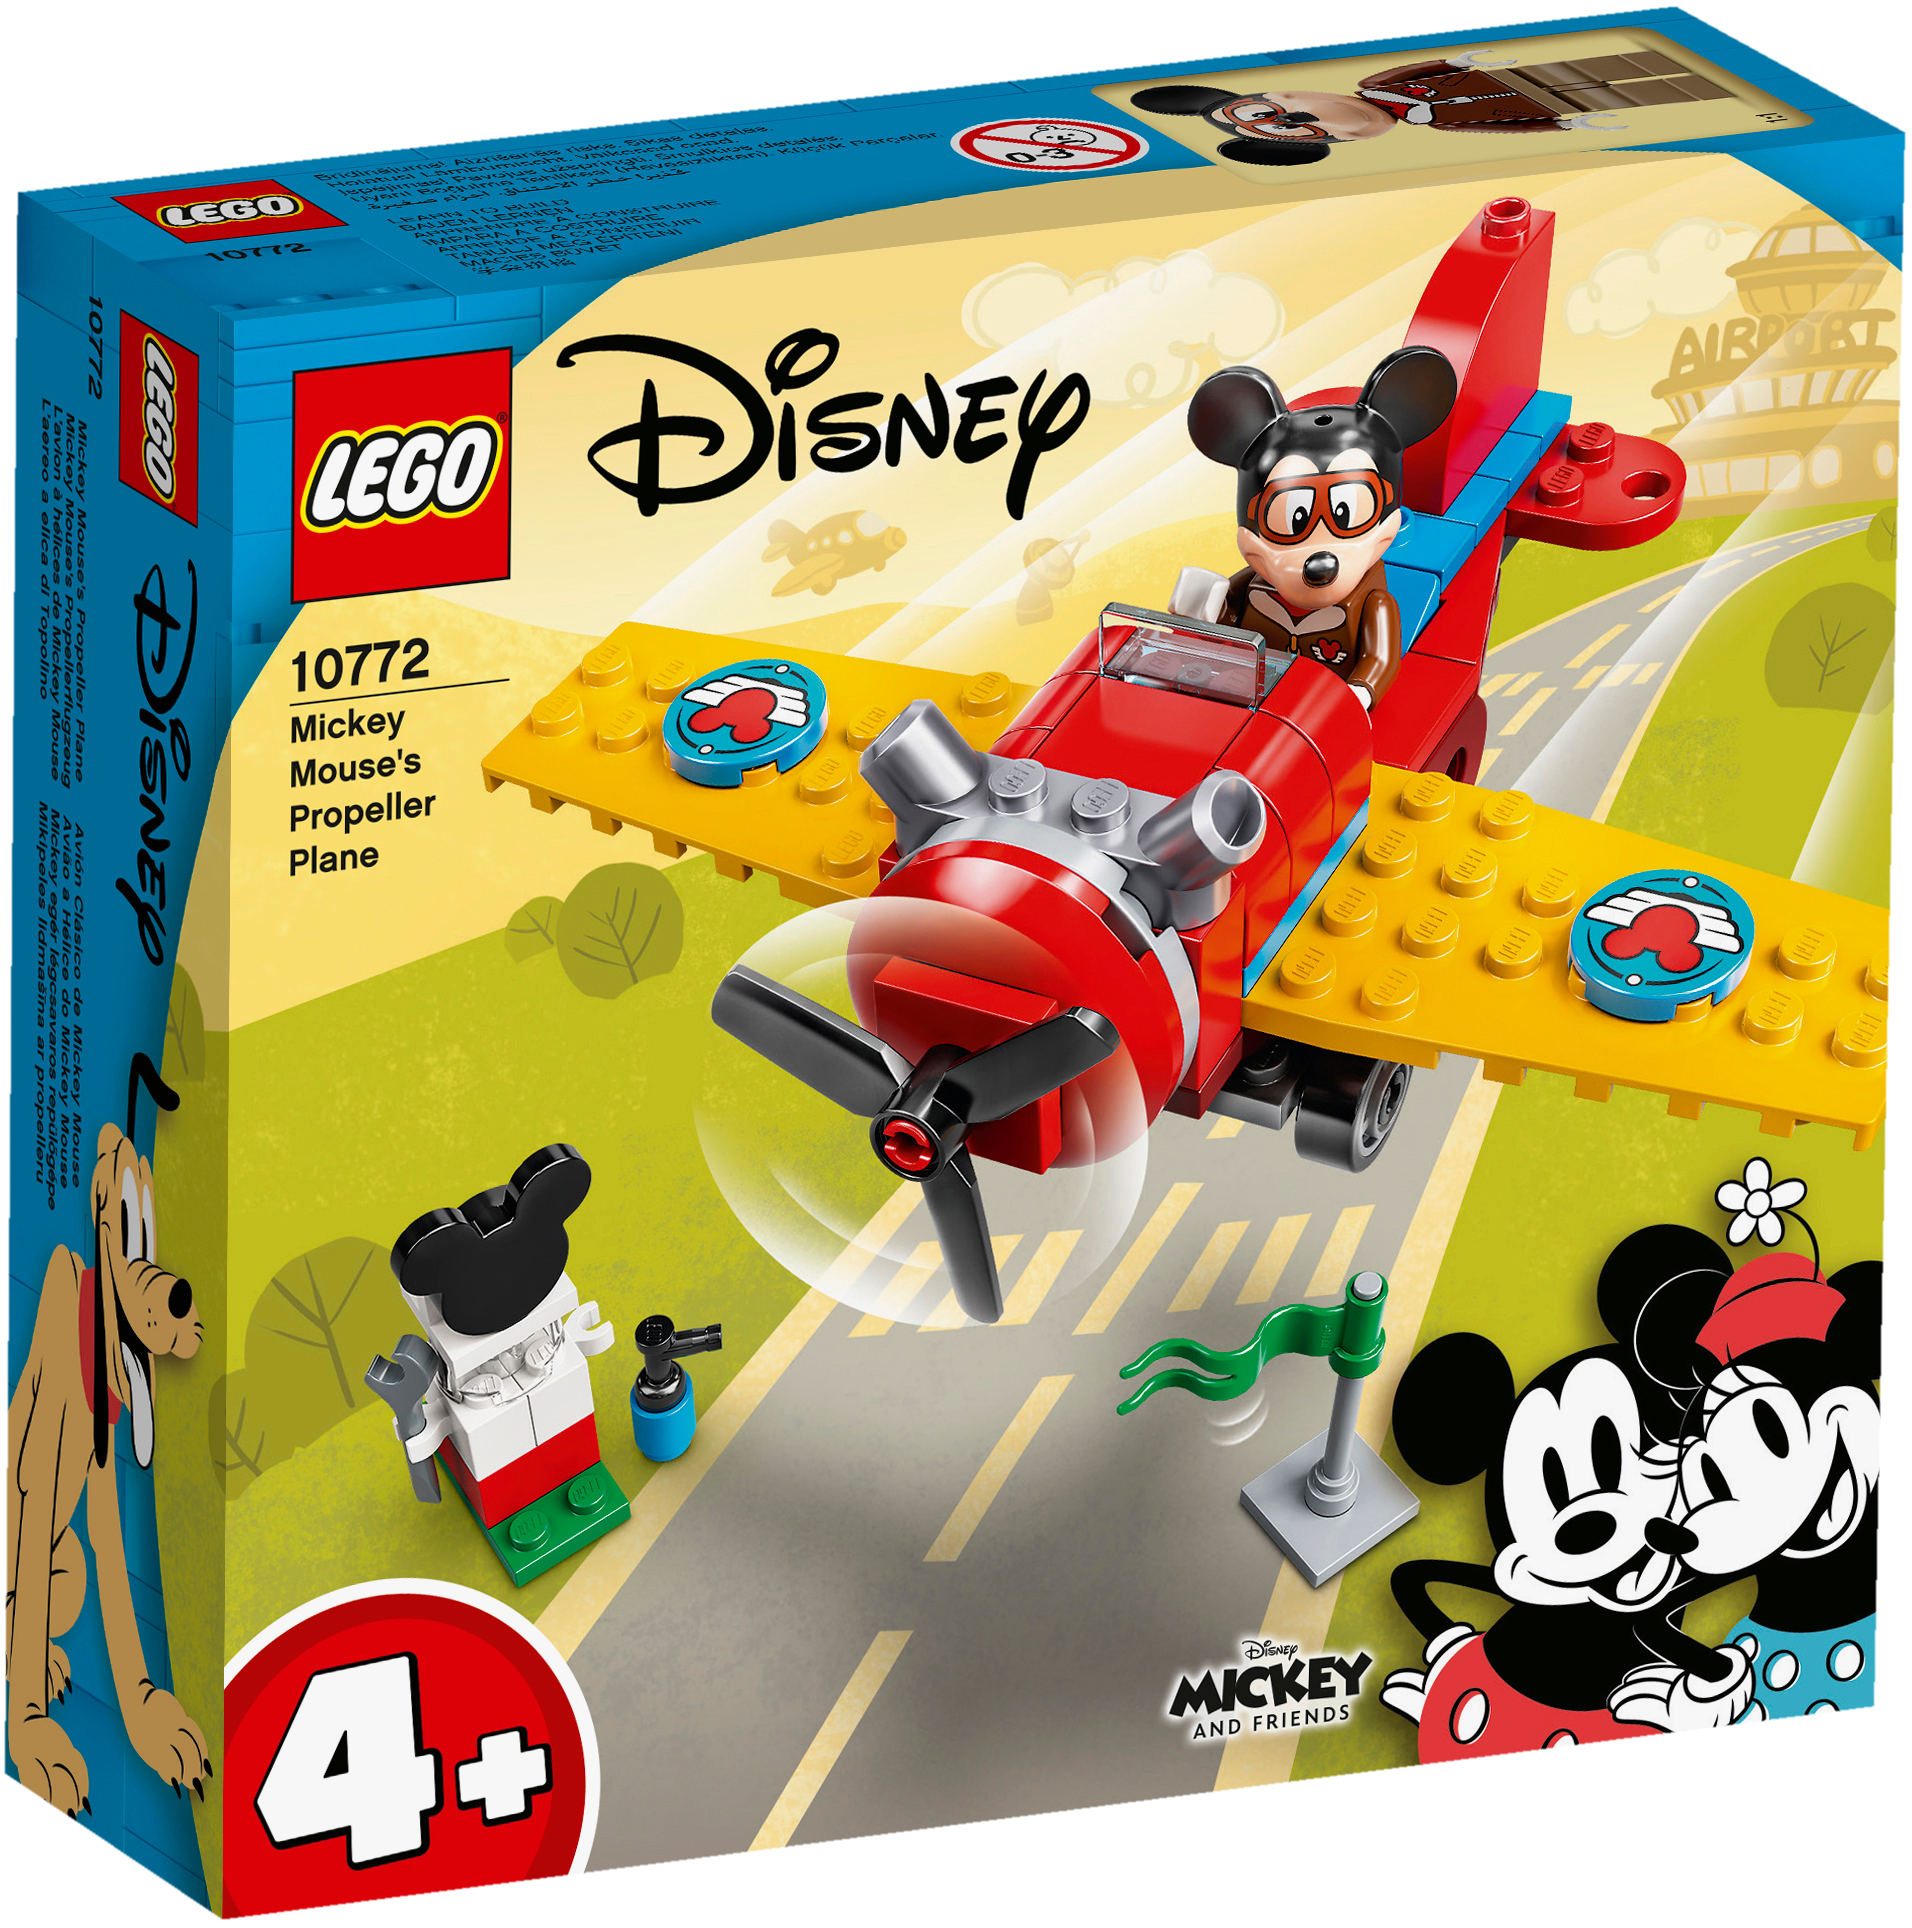 Lego Disney Mickey and Friends Mickey Mouse's Propeller Plane